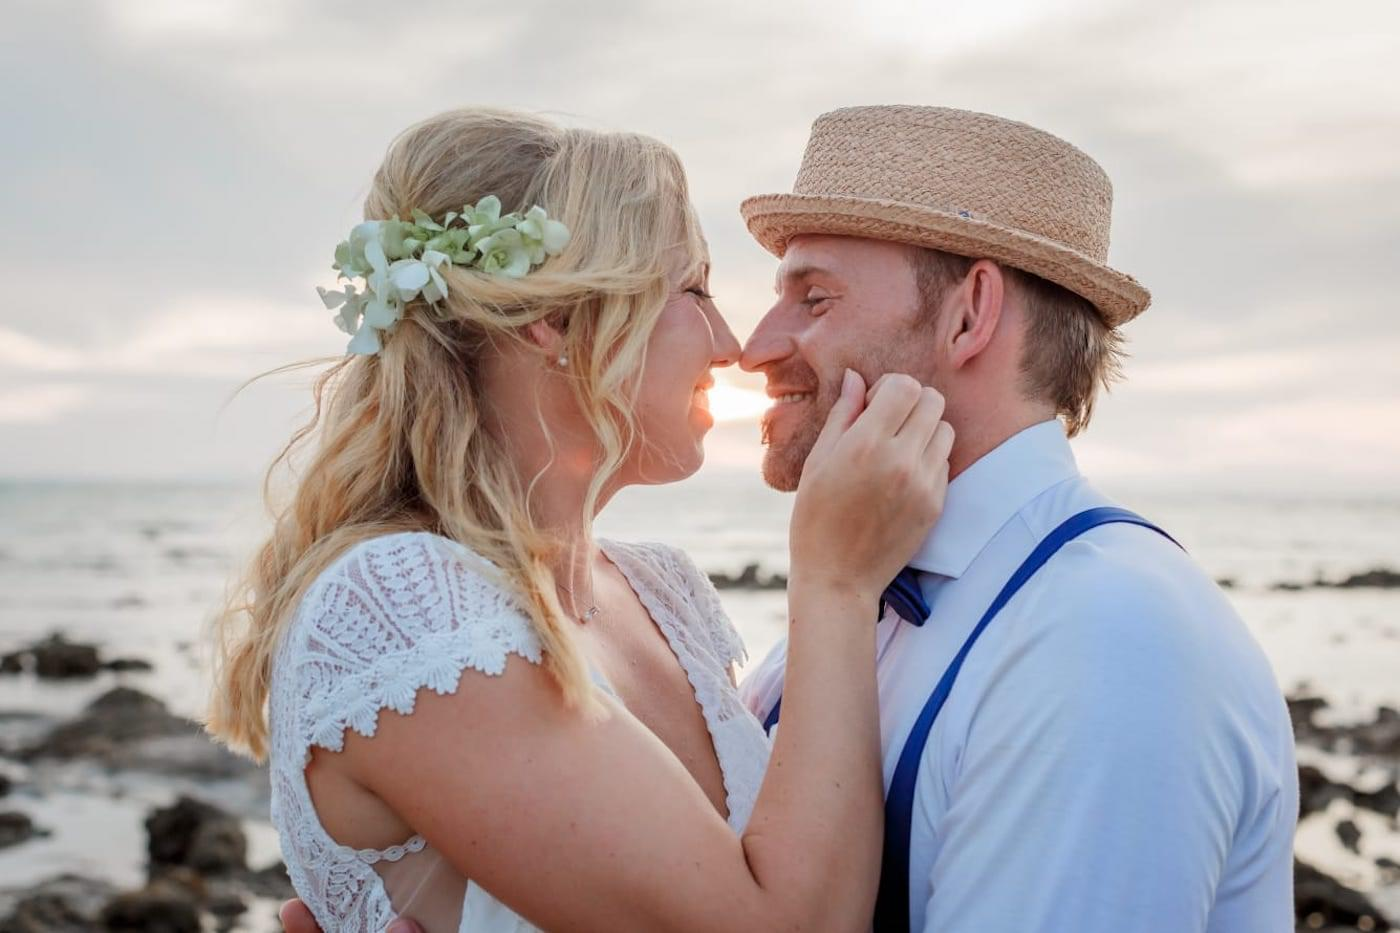 Bride and groom smiling on beach